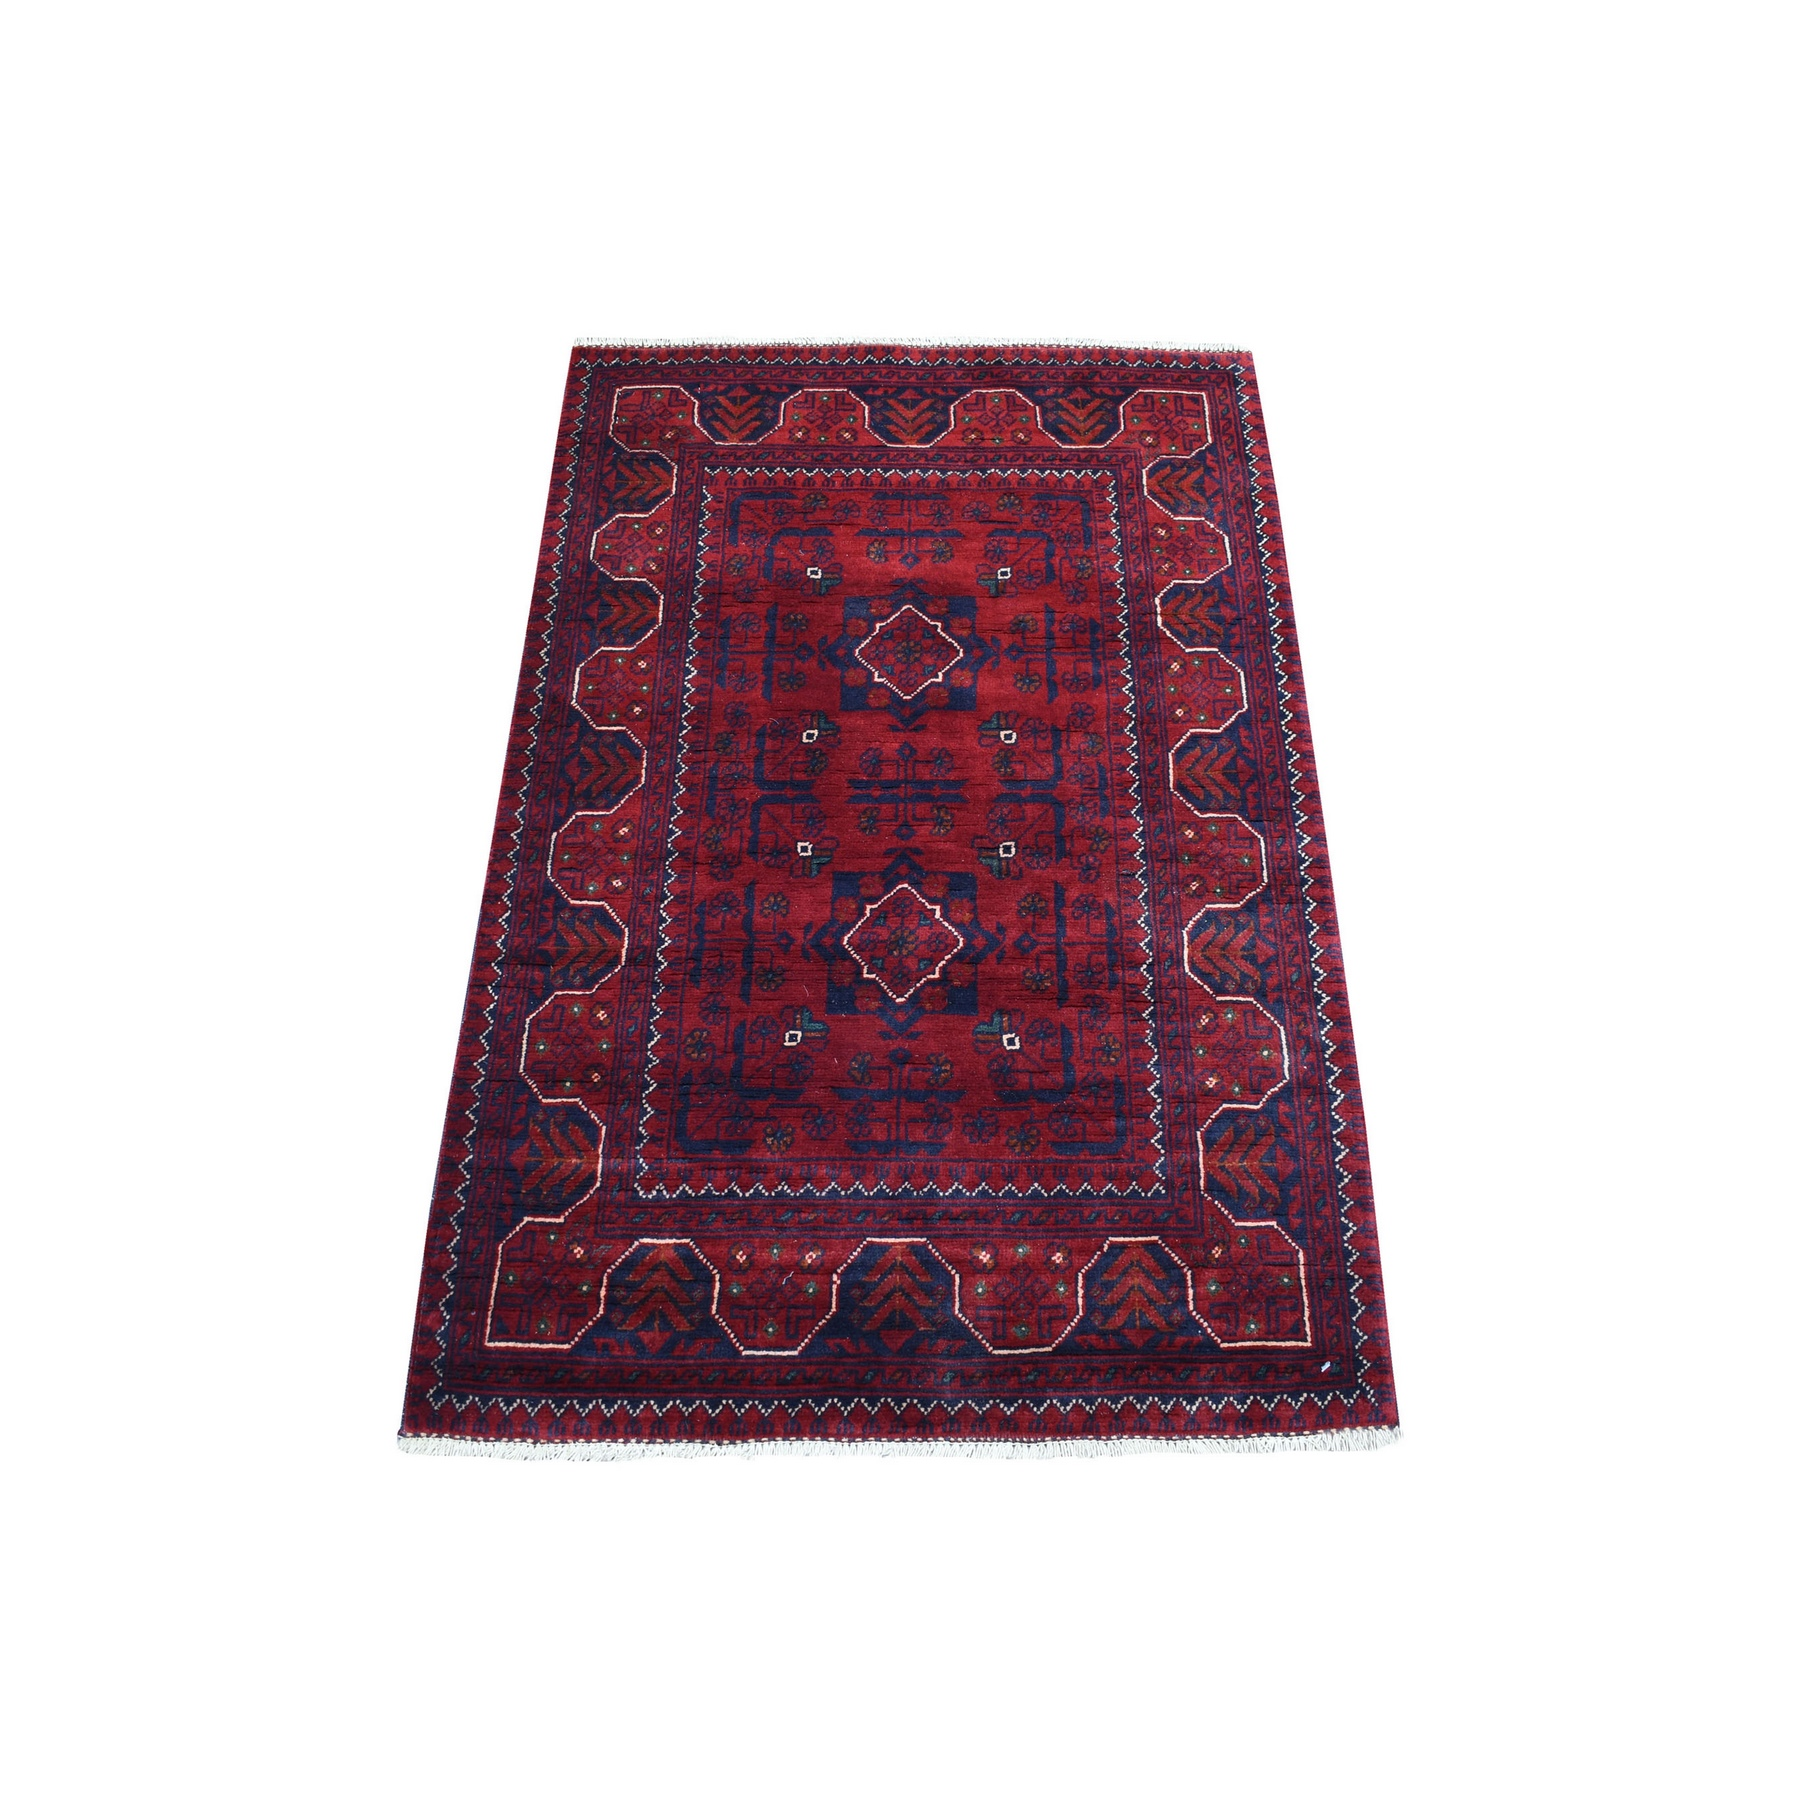 Nomadic And Village Collection Hand Knotted Red Rug No: 1136162